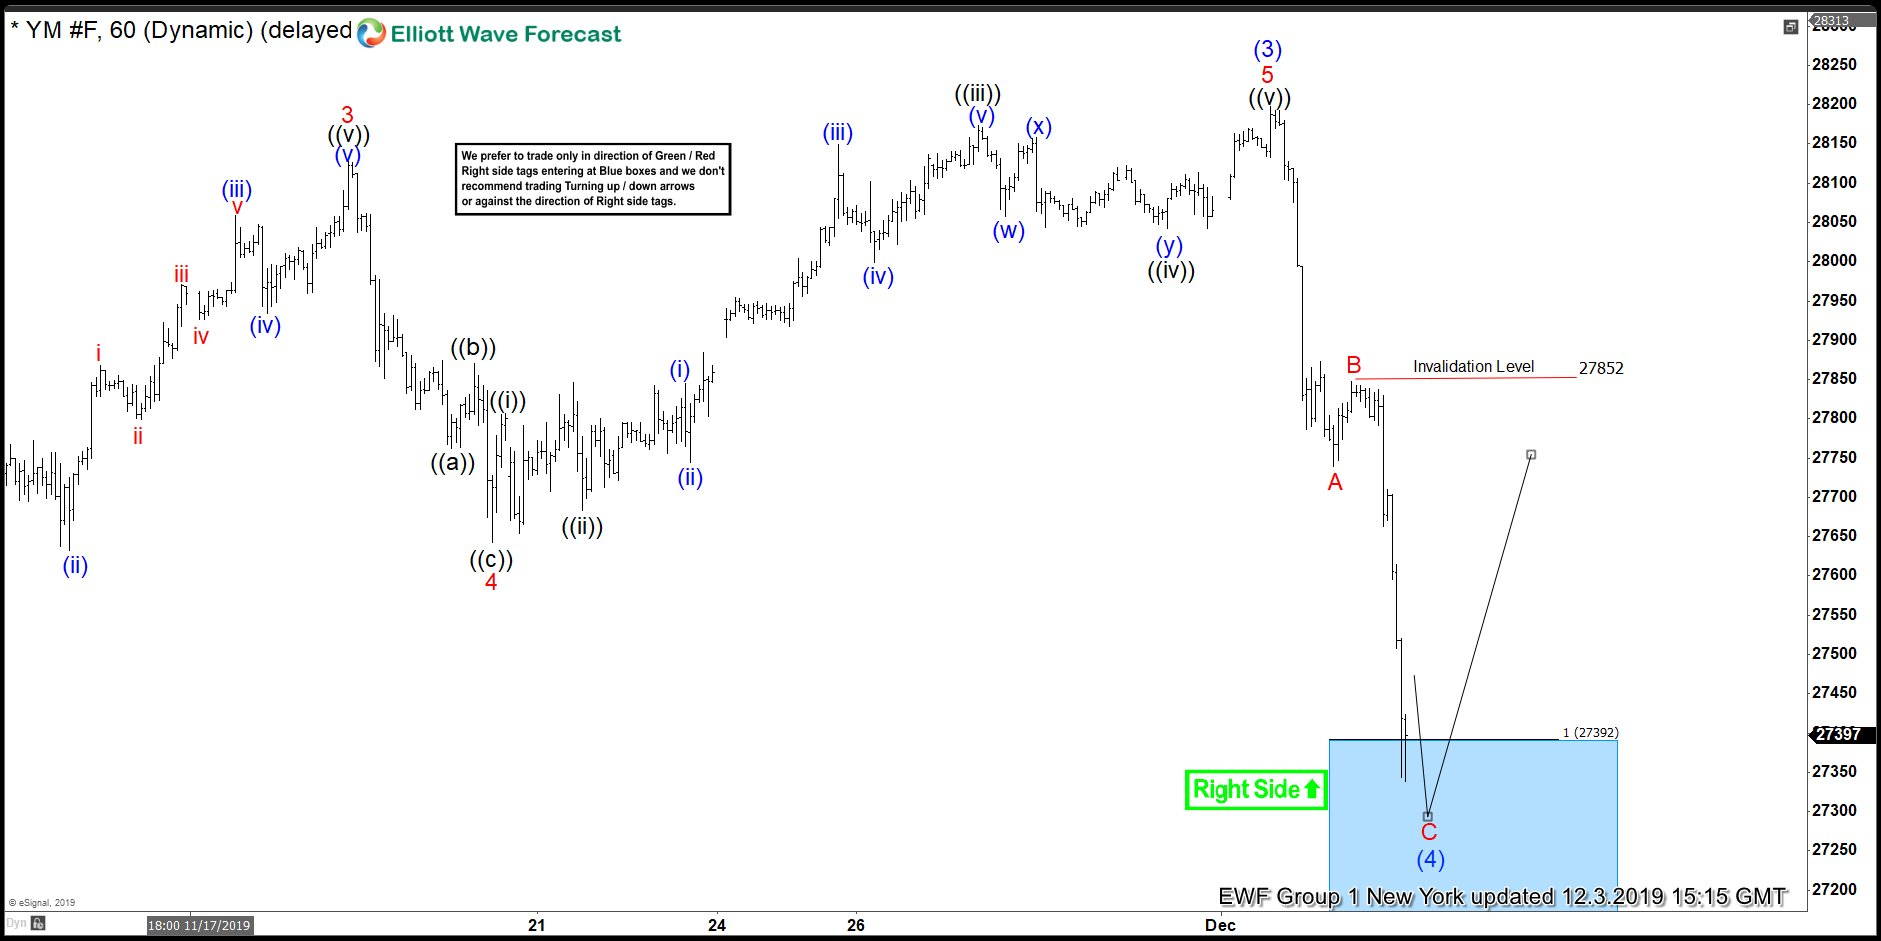 $YM_F ( Dow Futures) Elliott Wave: Forecasting The Rally From Blue Box